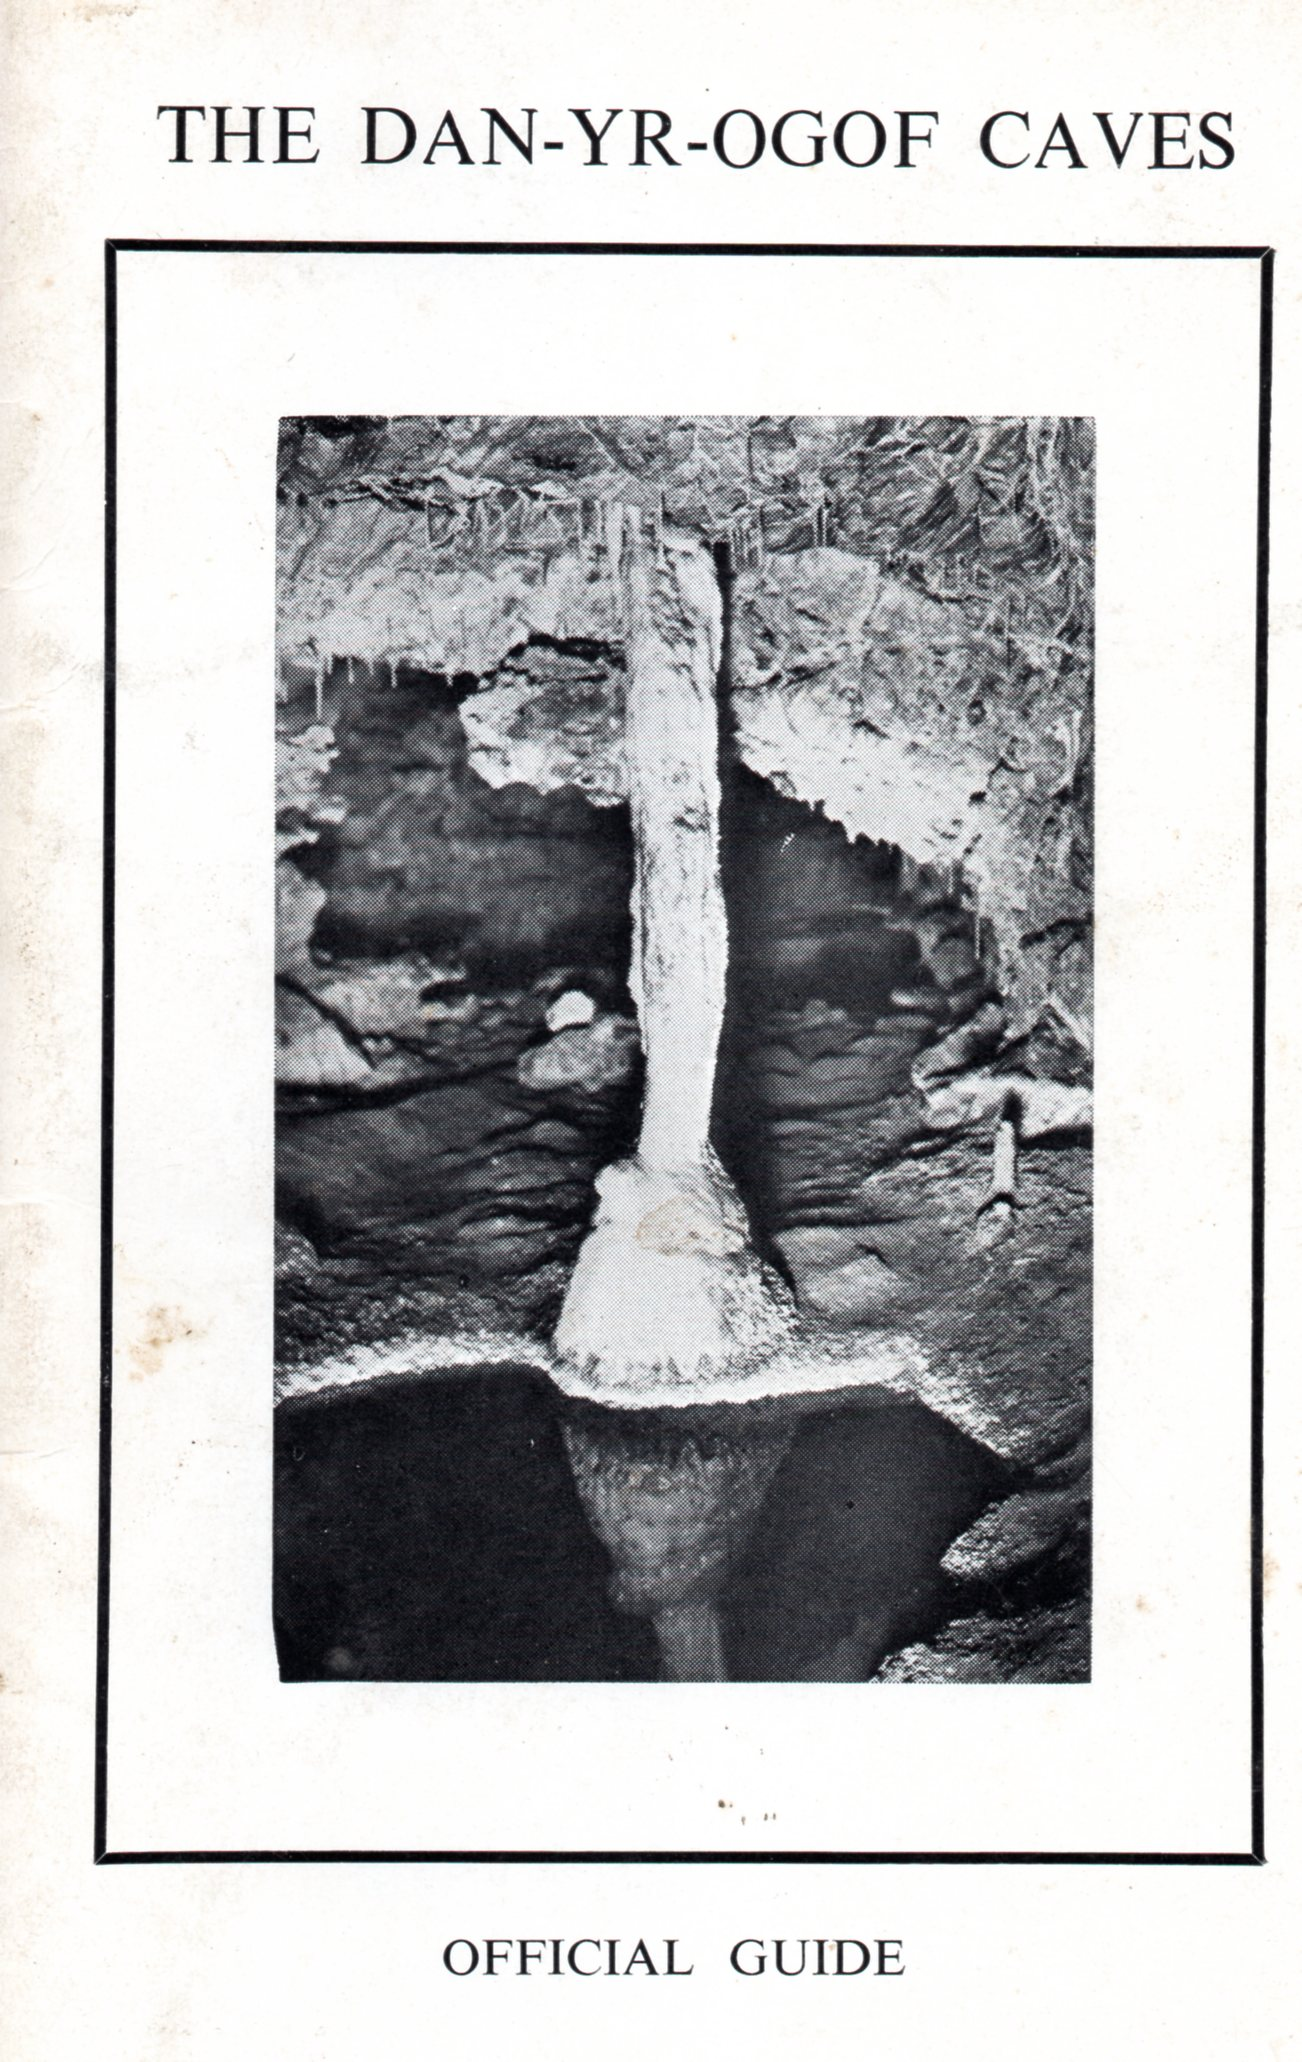 [USED] The Dan-Yr-Ogof Caves Official Guide (1950)